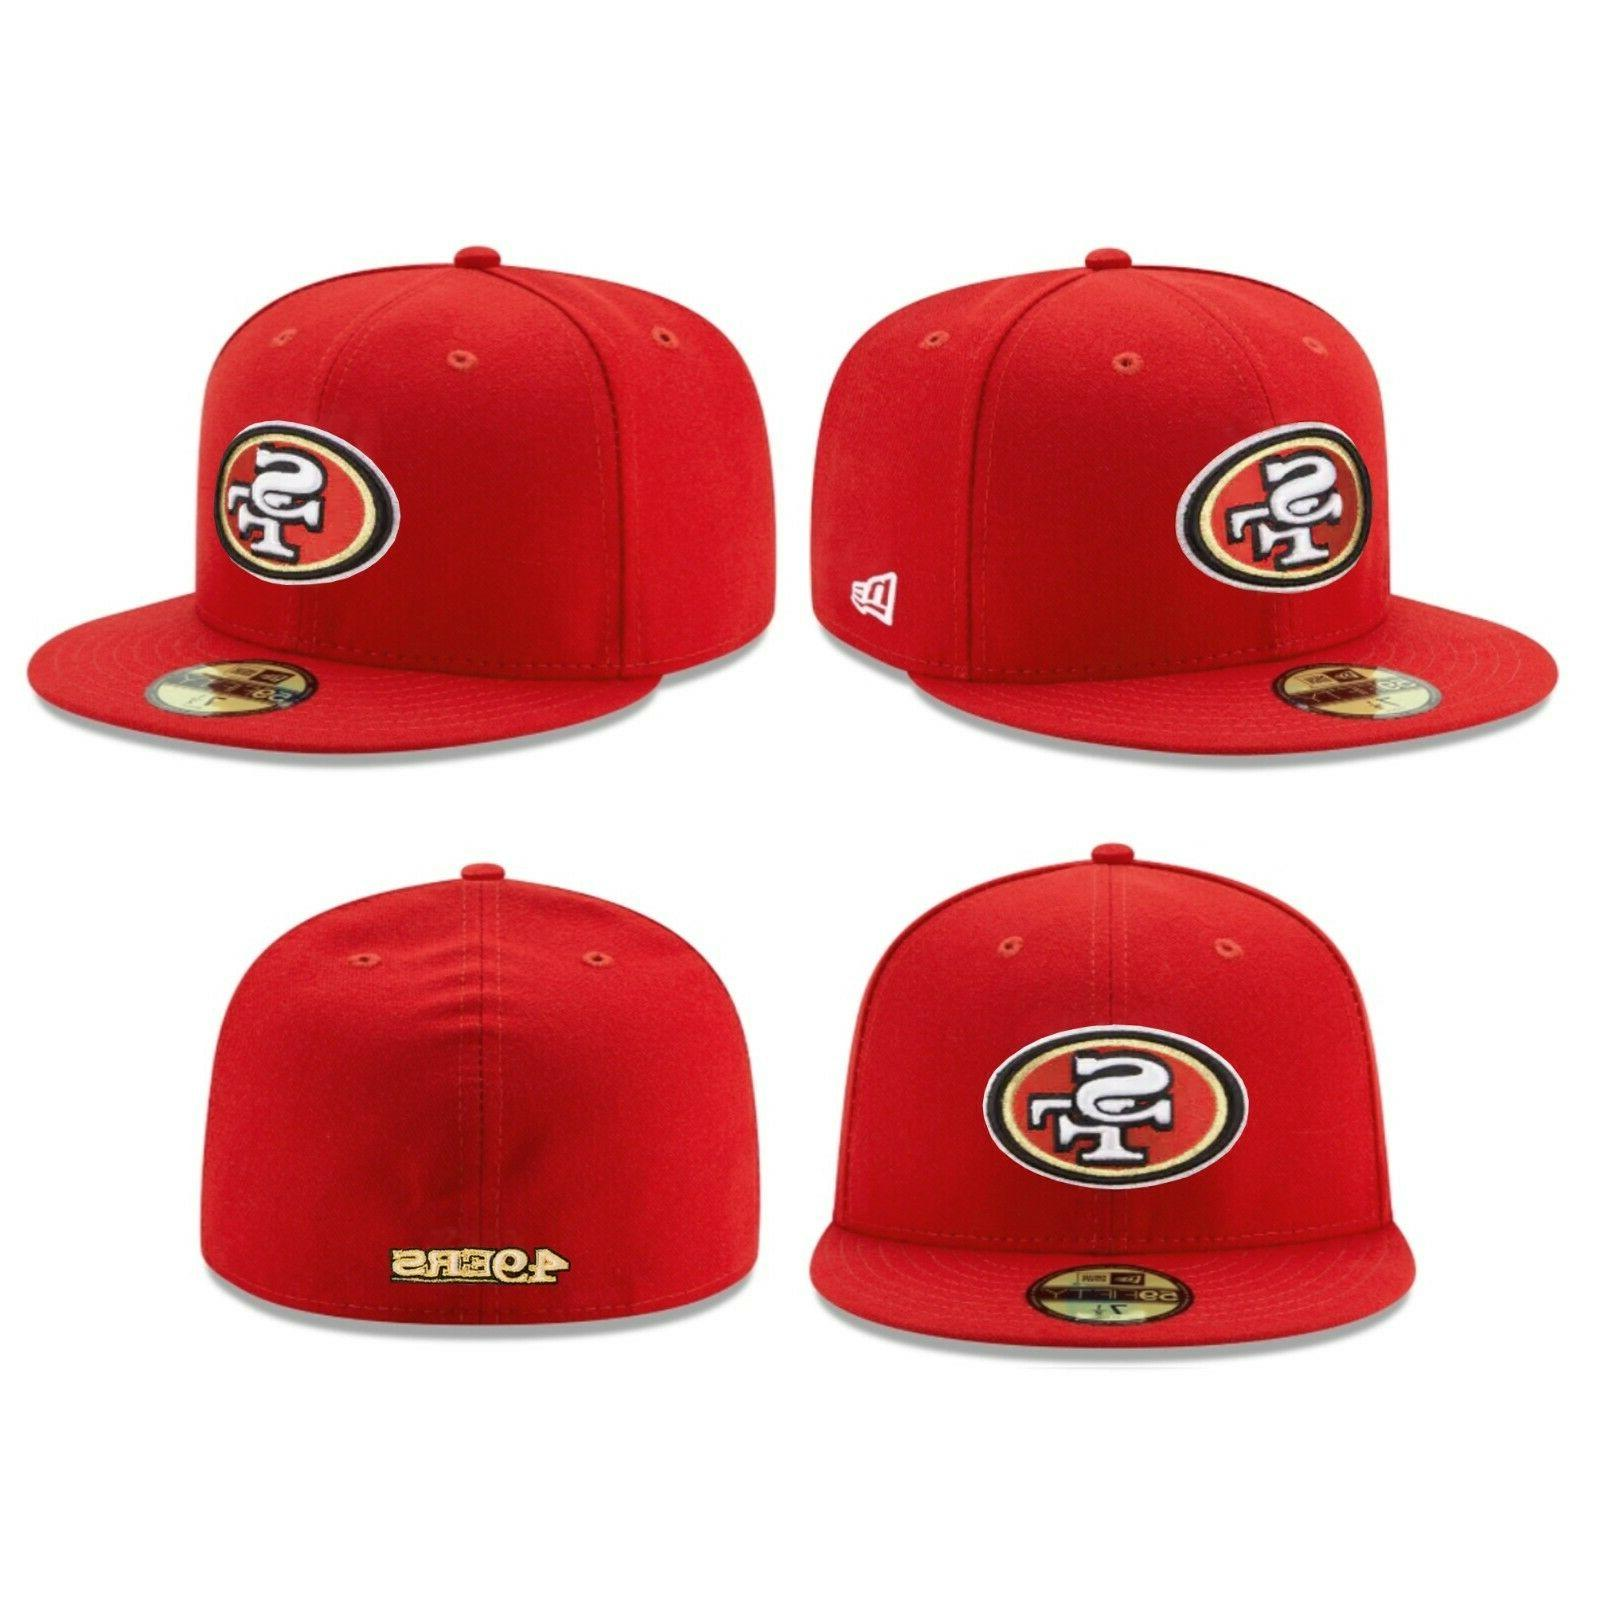 San NFL Authentic 59FIFTY Fitted Cap 5950